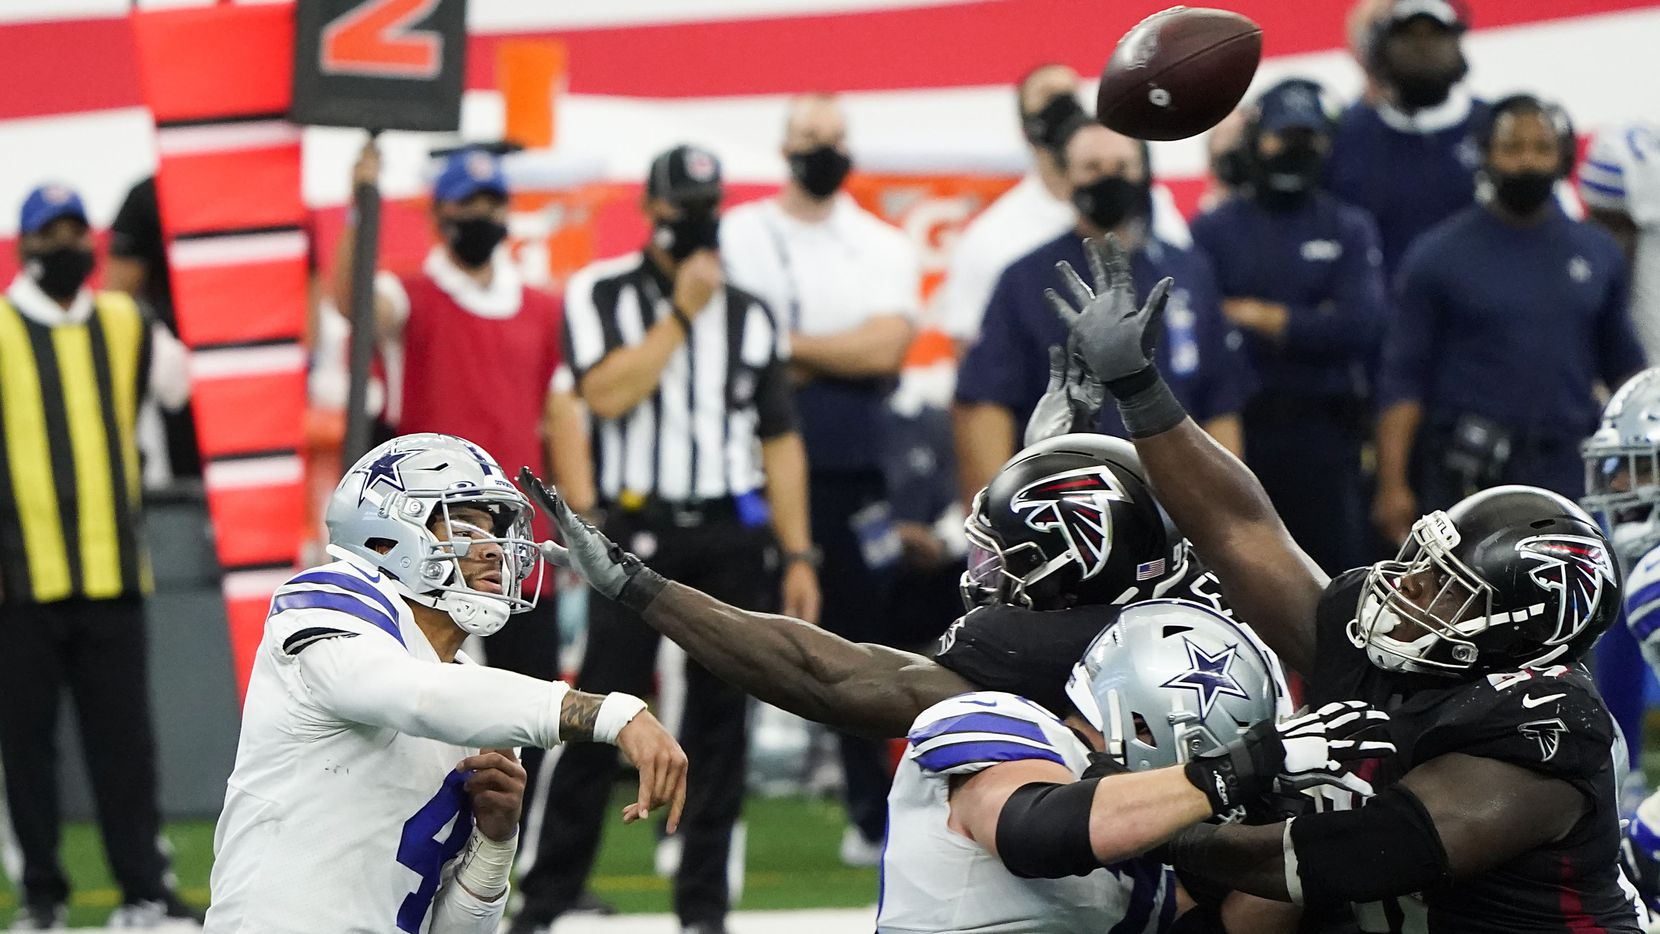 FILE - Cowboys quarterback Dak Prescott completes a 24-yard pass to wide receiver CeeDee Lamb to set up a game-winning field goal during the fourth quarter of 40-39 win against the Falcons on Sunday, Sept. 20, 2020, at AT&T Stadium in Arlington.